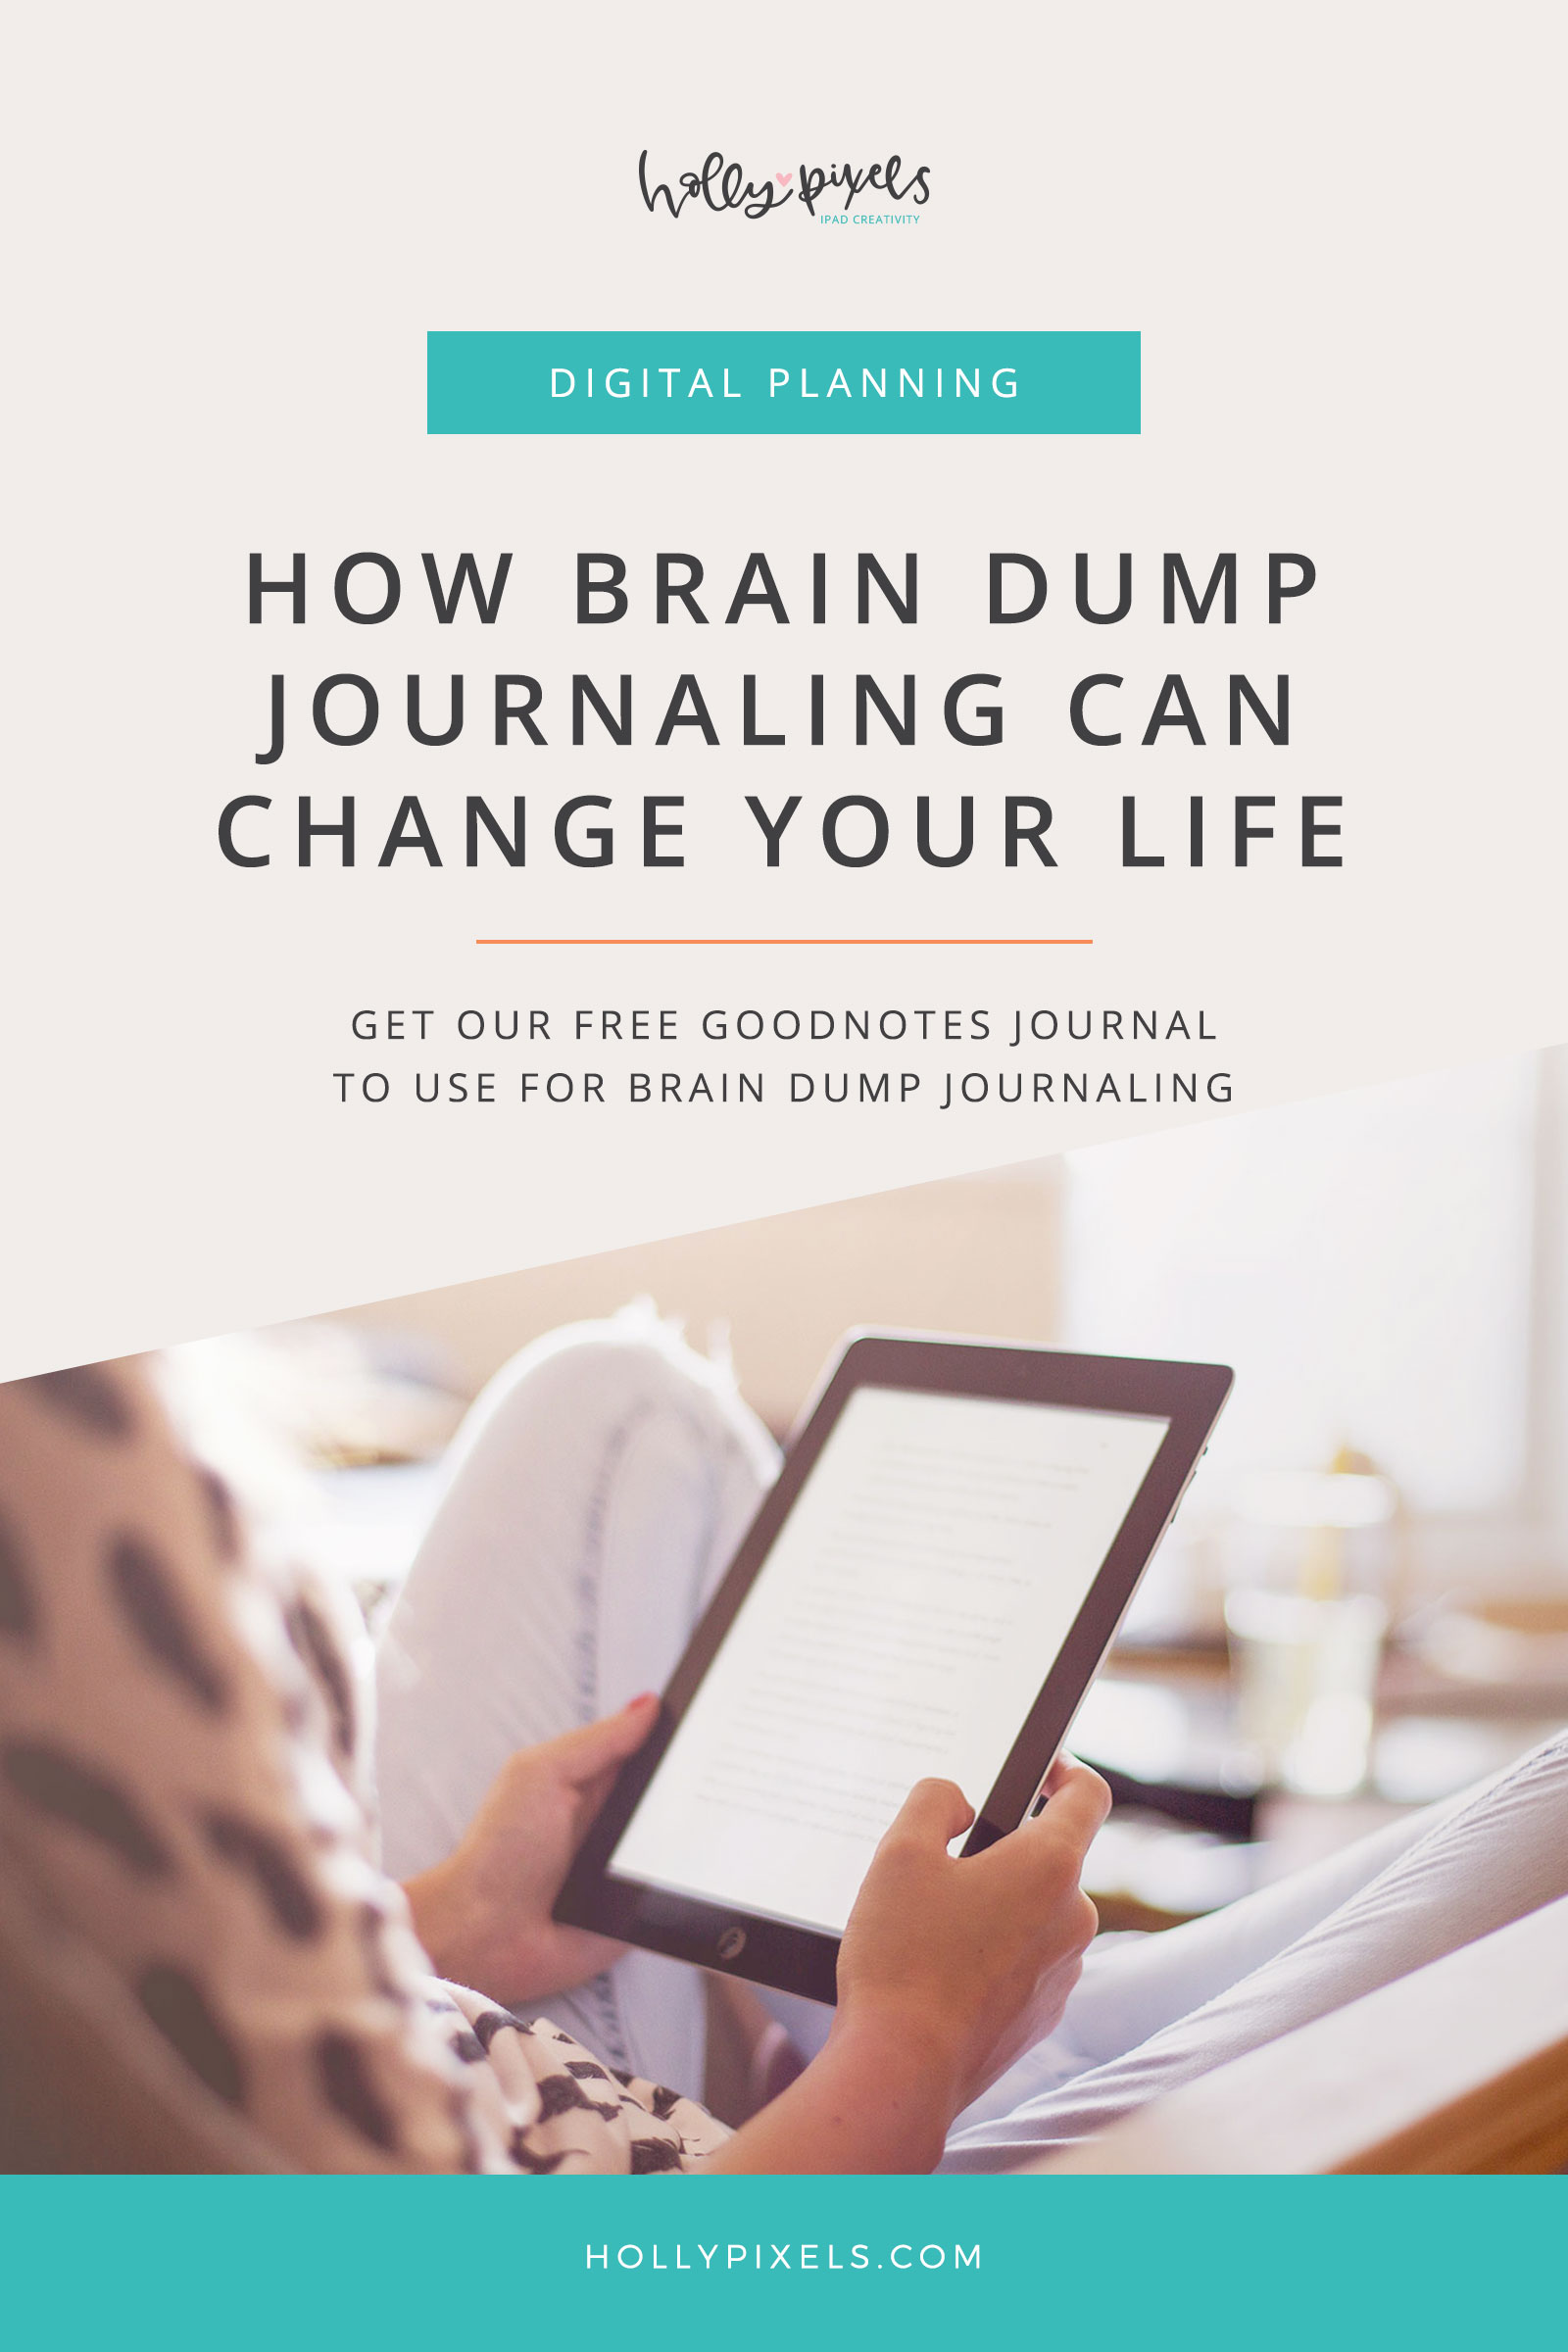 Have you heard of a brain dump? If you're curious about what it can offer you and when/how you should use it then check out our recent post on How Brain Dump Journaling Can Change Your Life by Kate George.